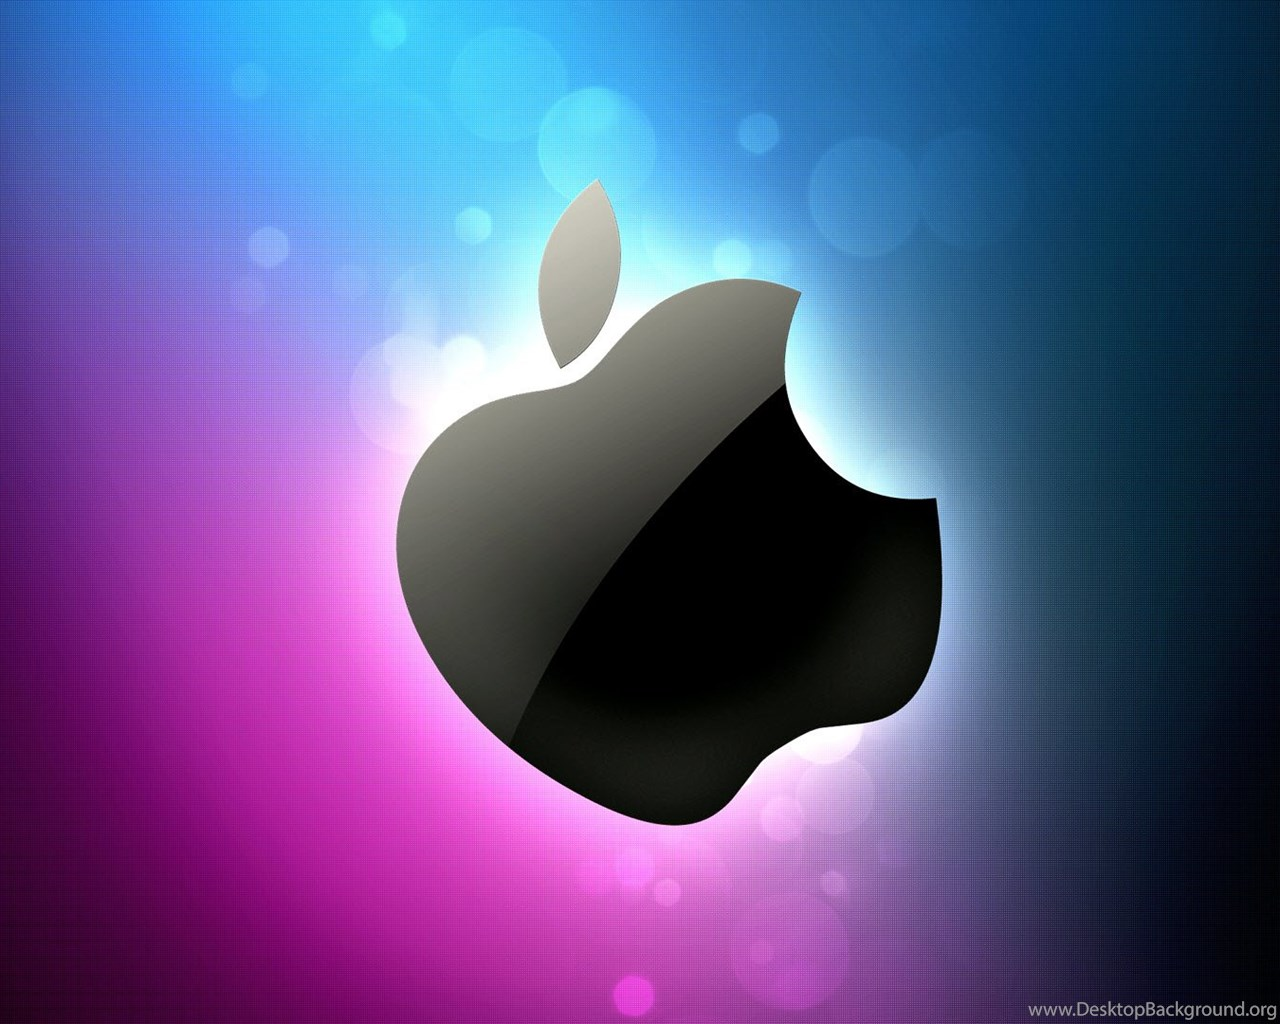 Apple Logo Wallpapers Hd 1080p For Iphone Desktop Background